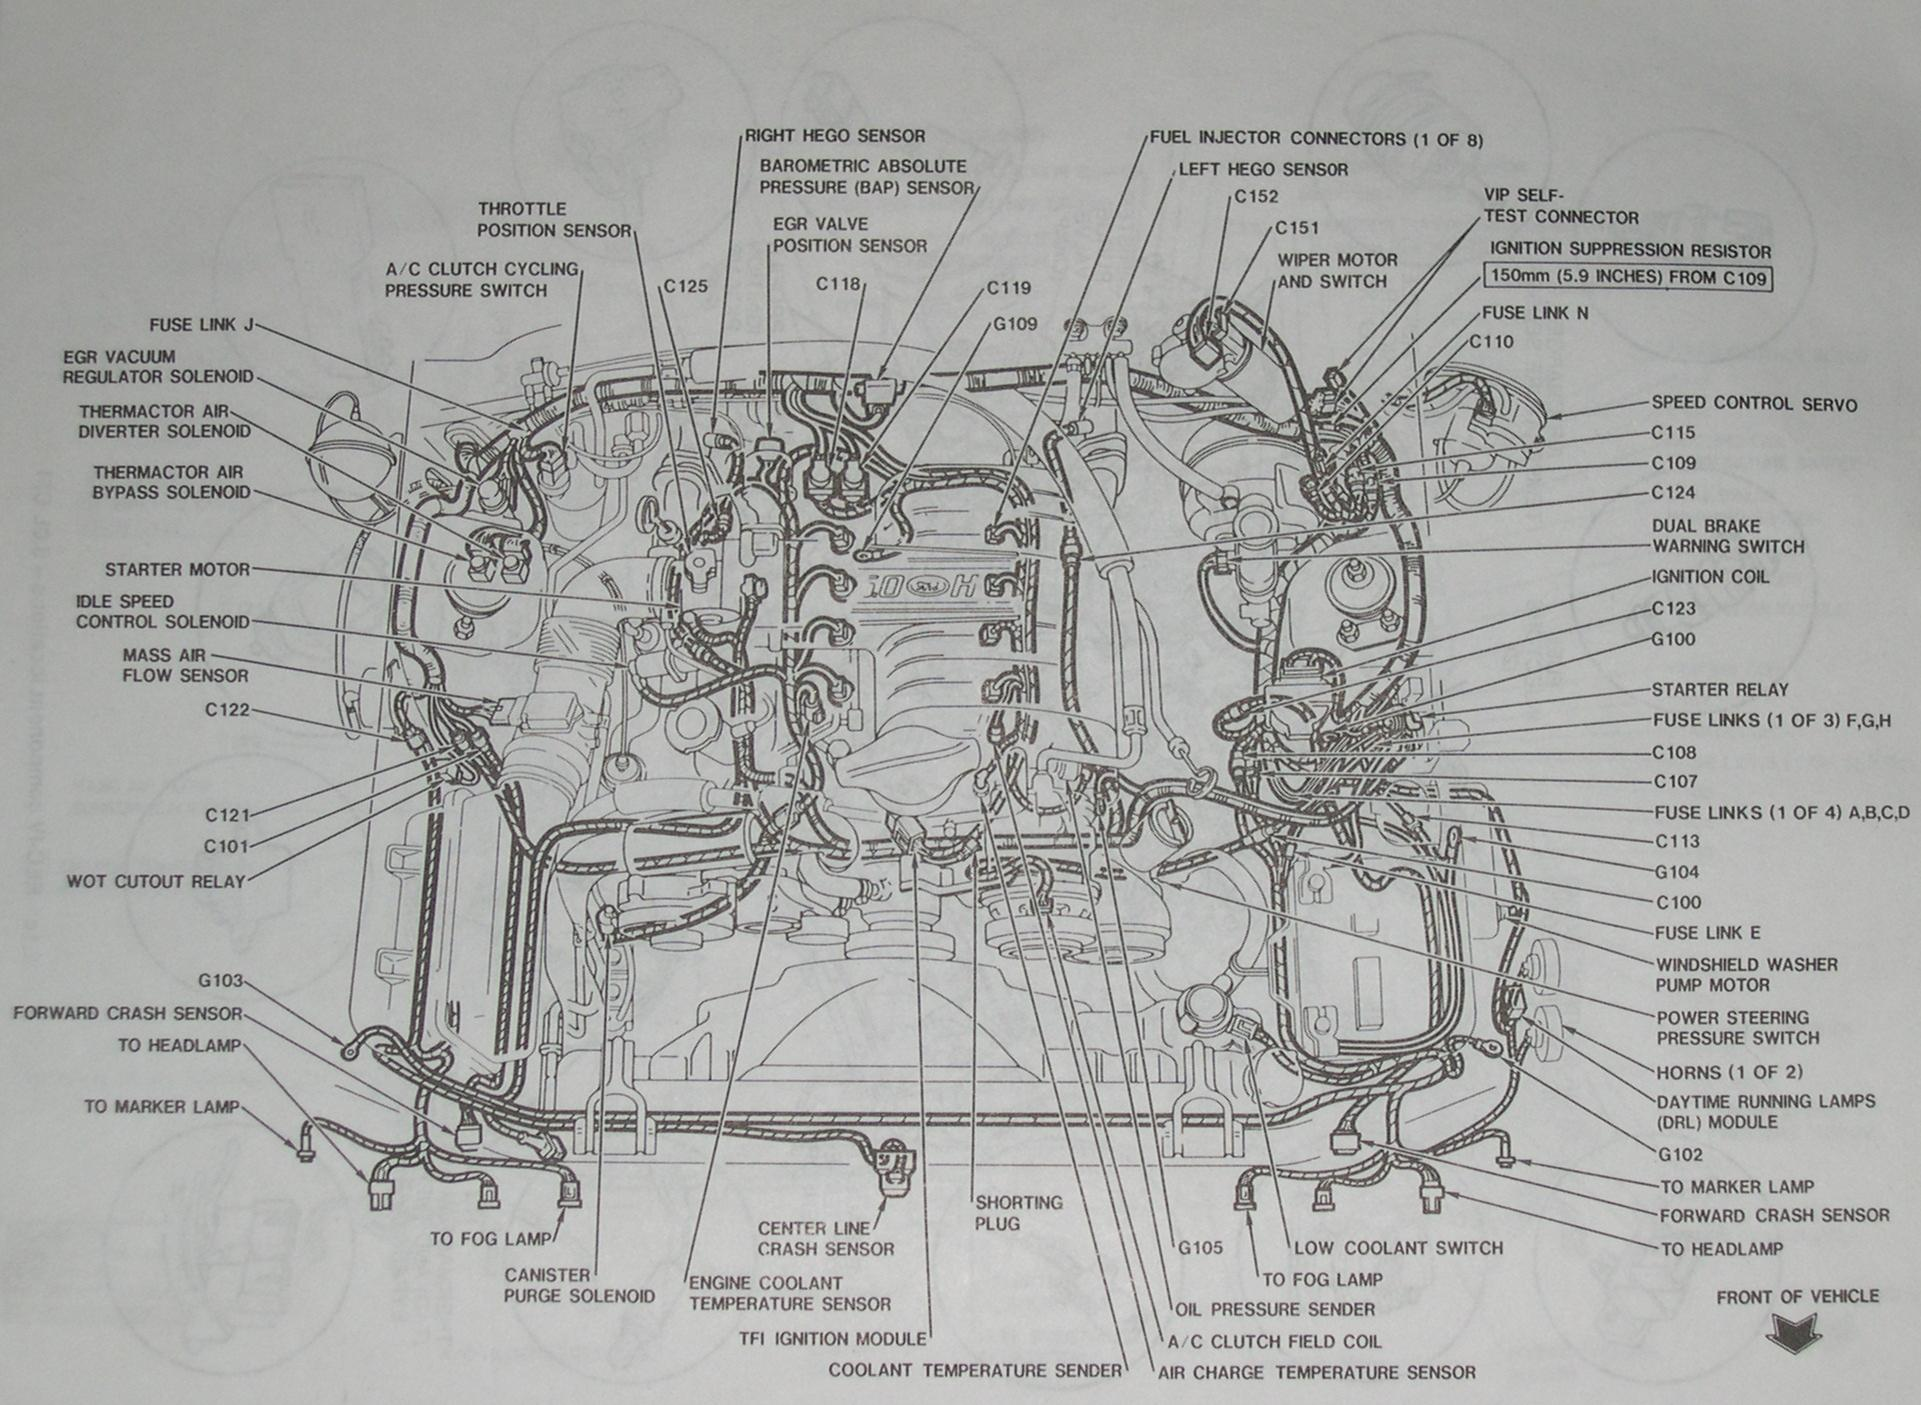 00 mustang engine diagram owner manual \u0026 wiring diagram 2000 Ford Mustang Engine